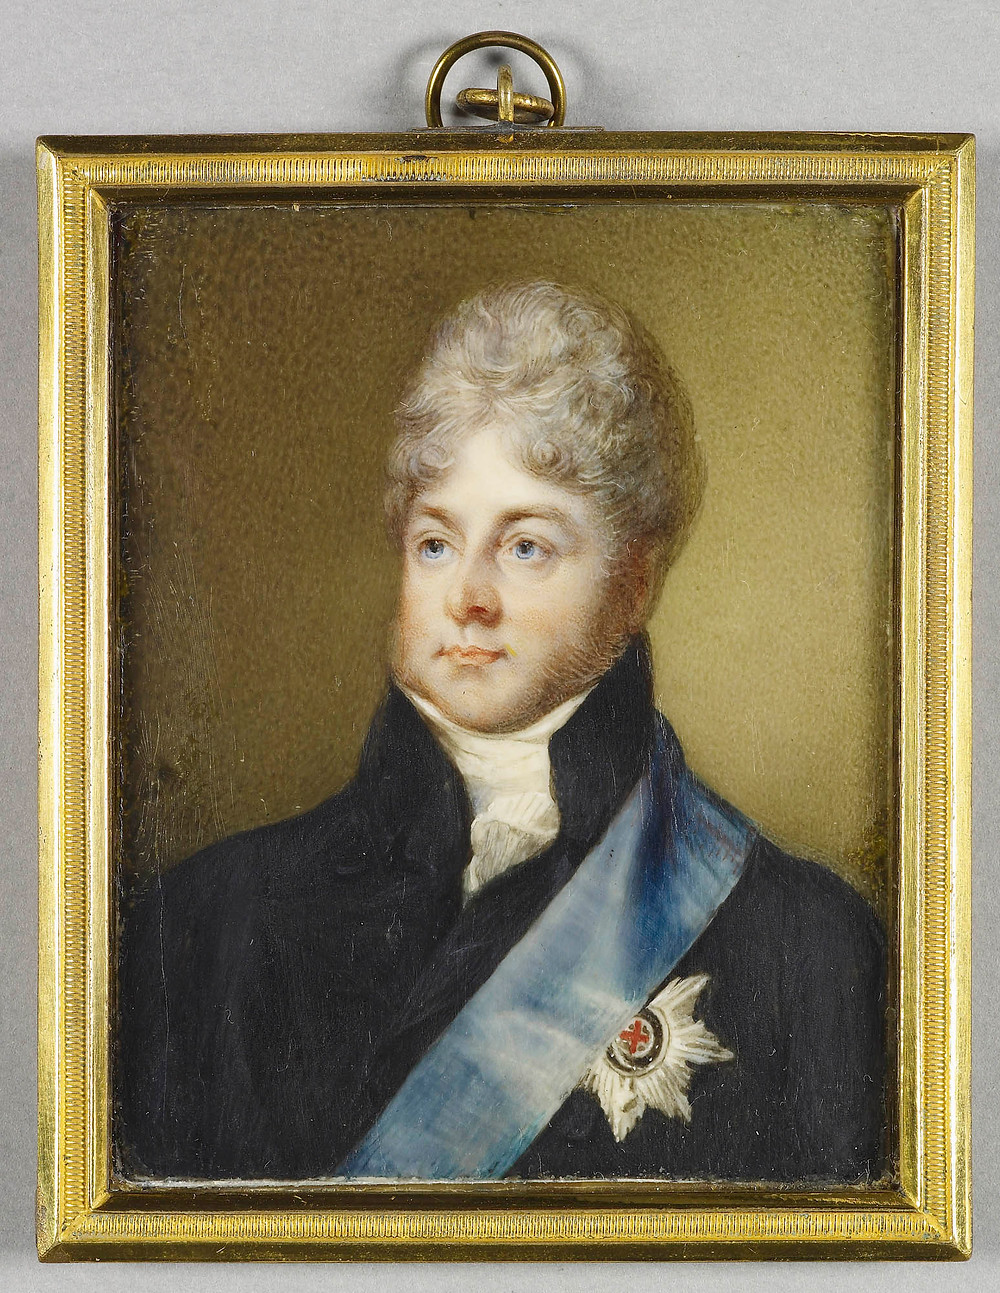 George IV (1762-1830) Signed and dated 1811 by Horace Hone portrait painting